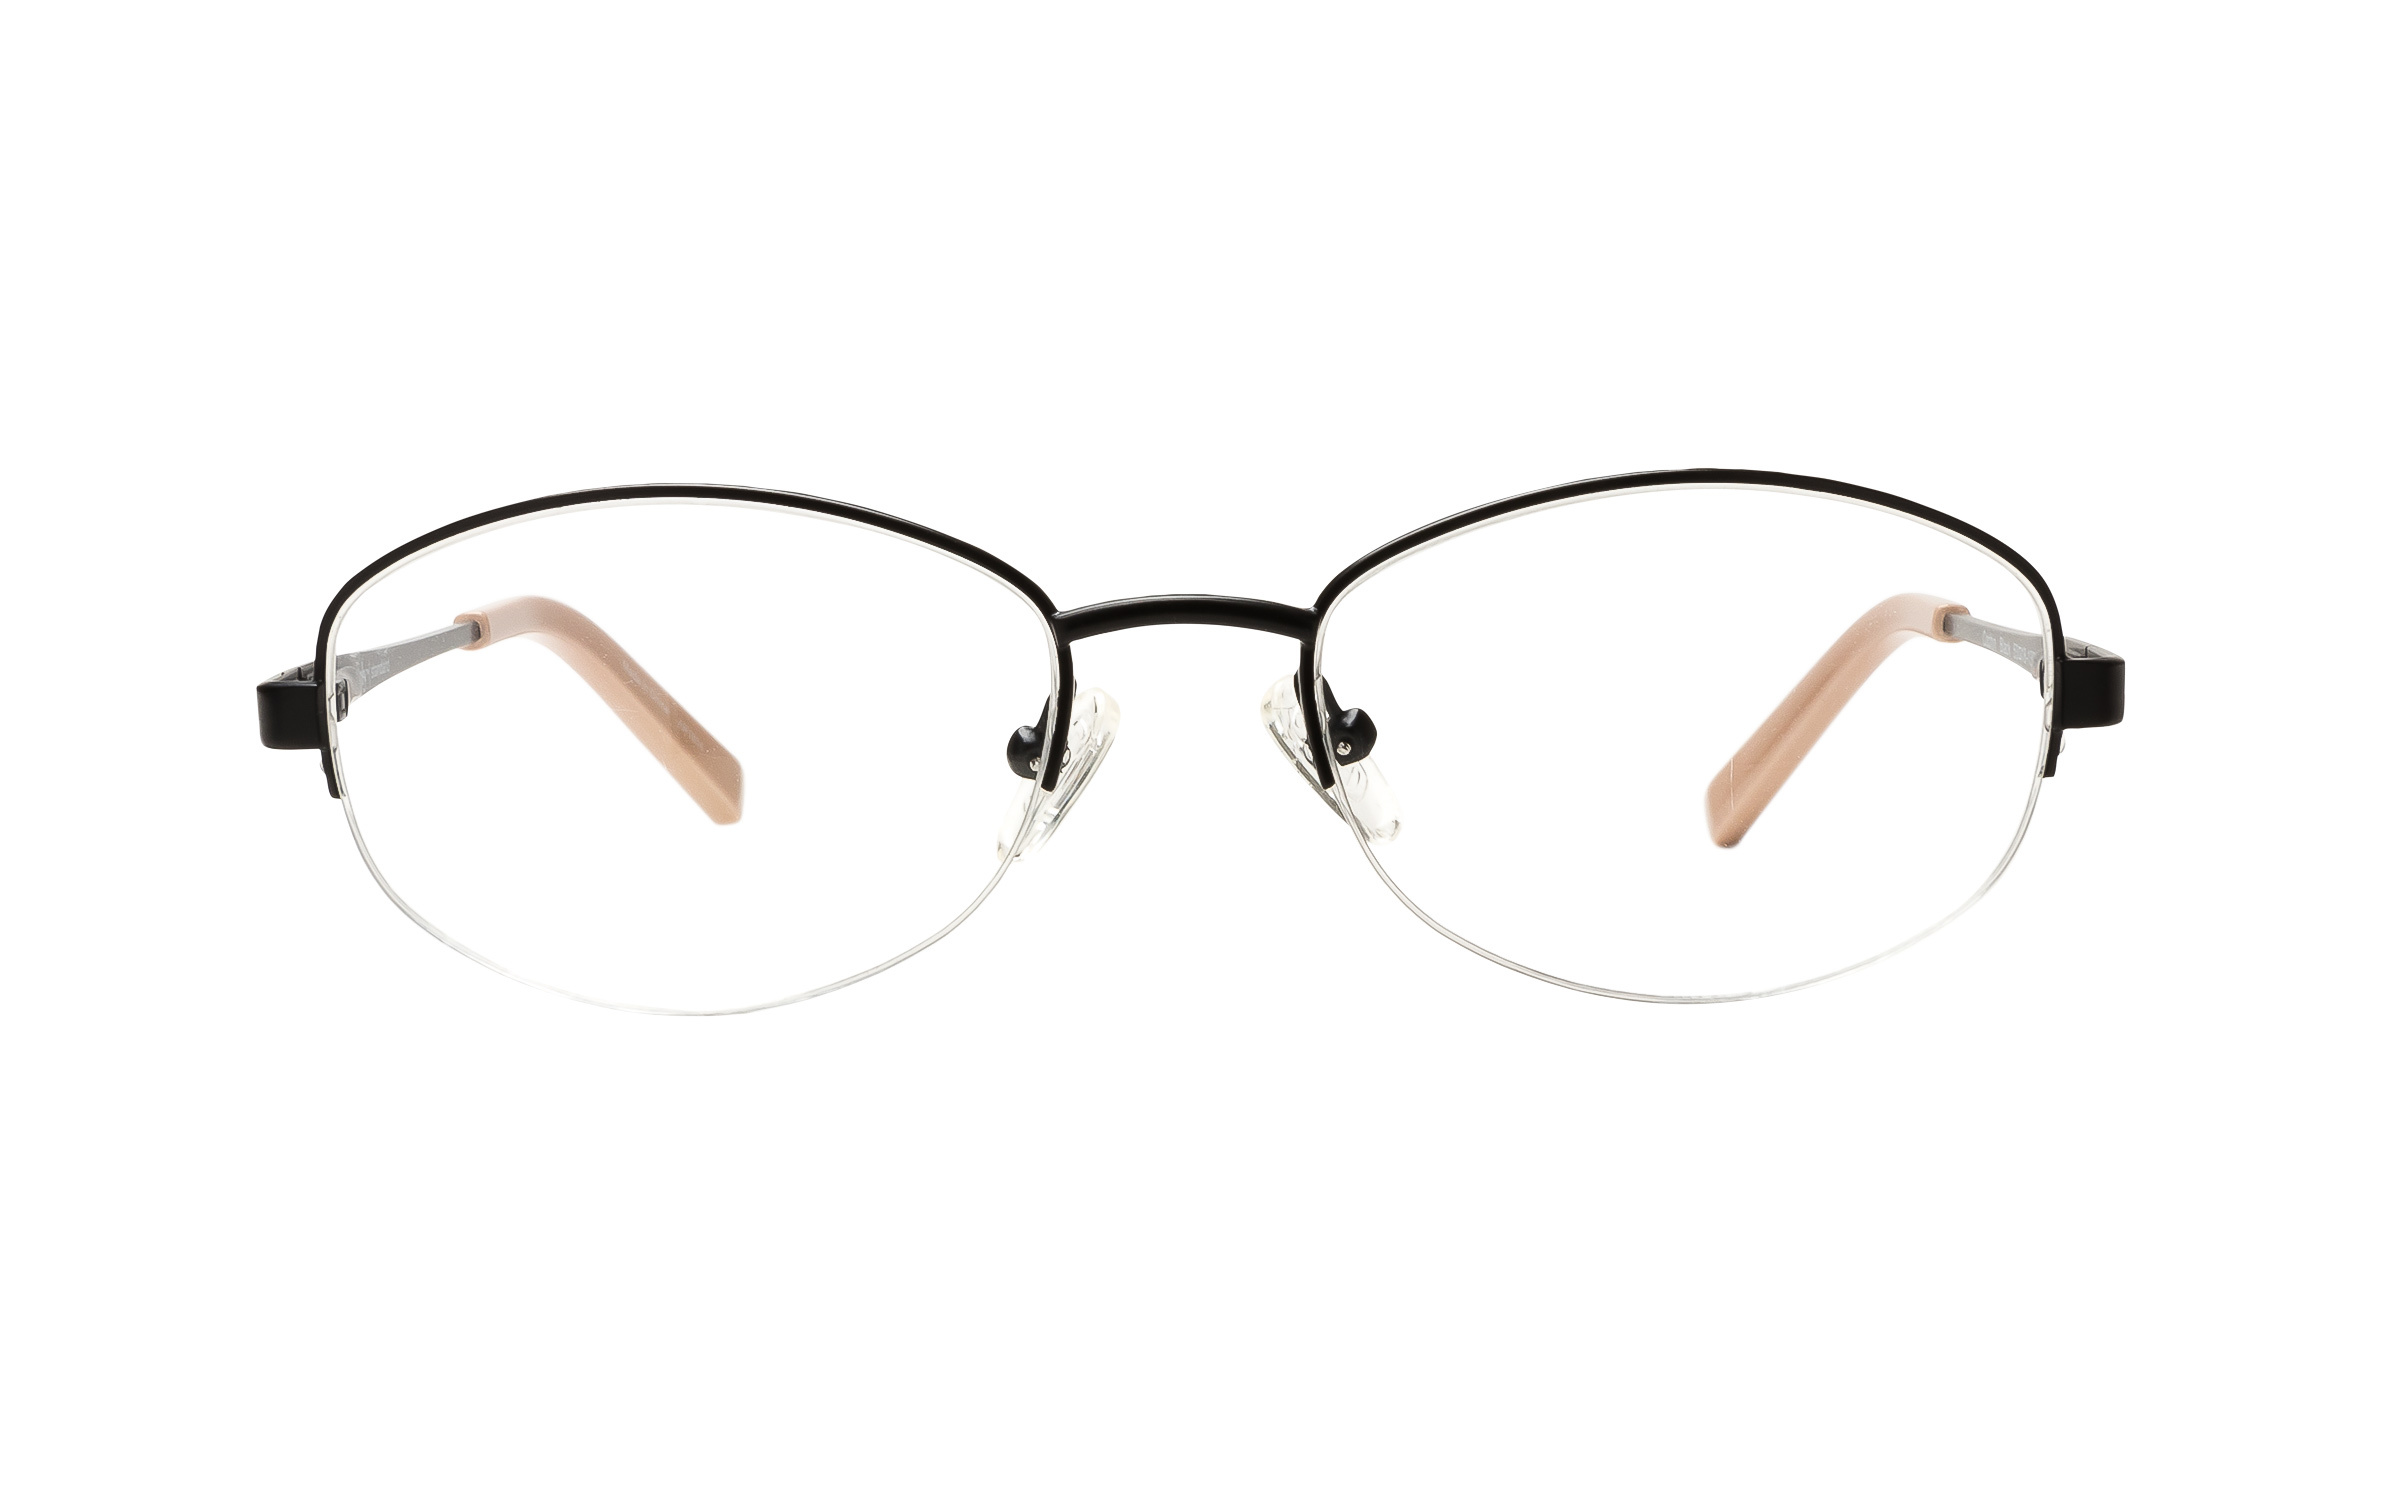 Clearly Basics Cochin (53) Eyeglasses and Frame in Black | Plastic